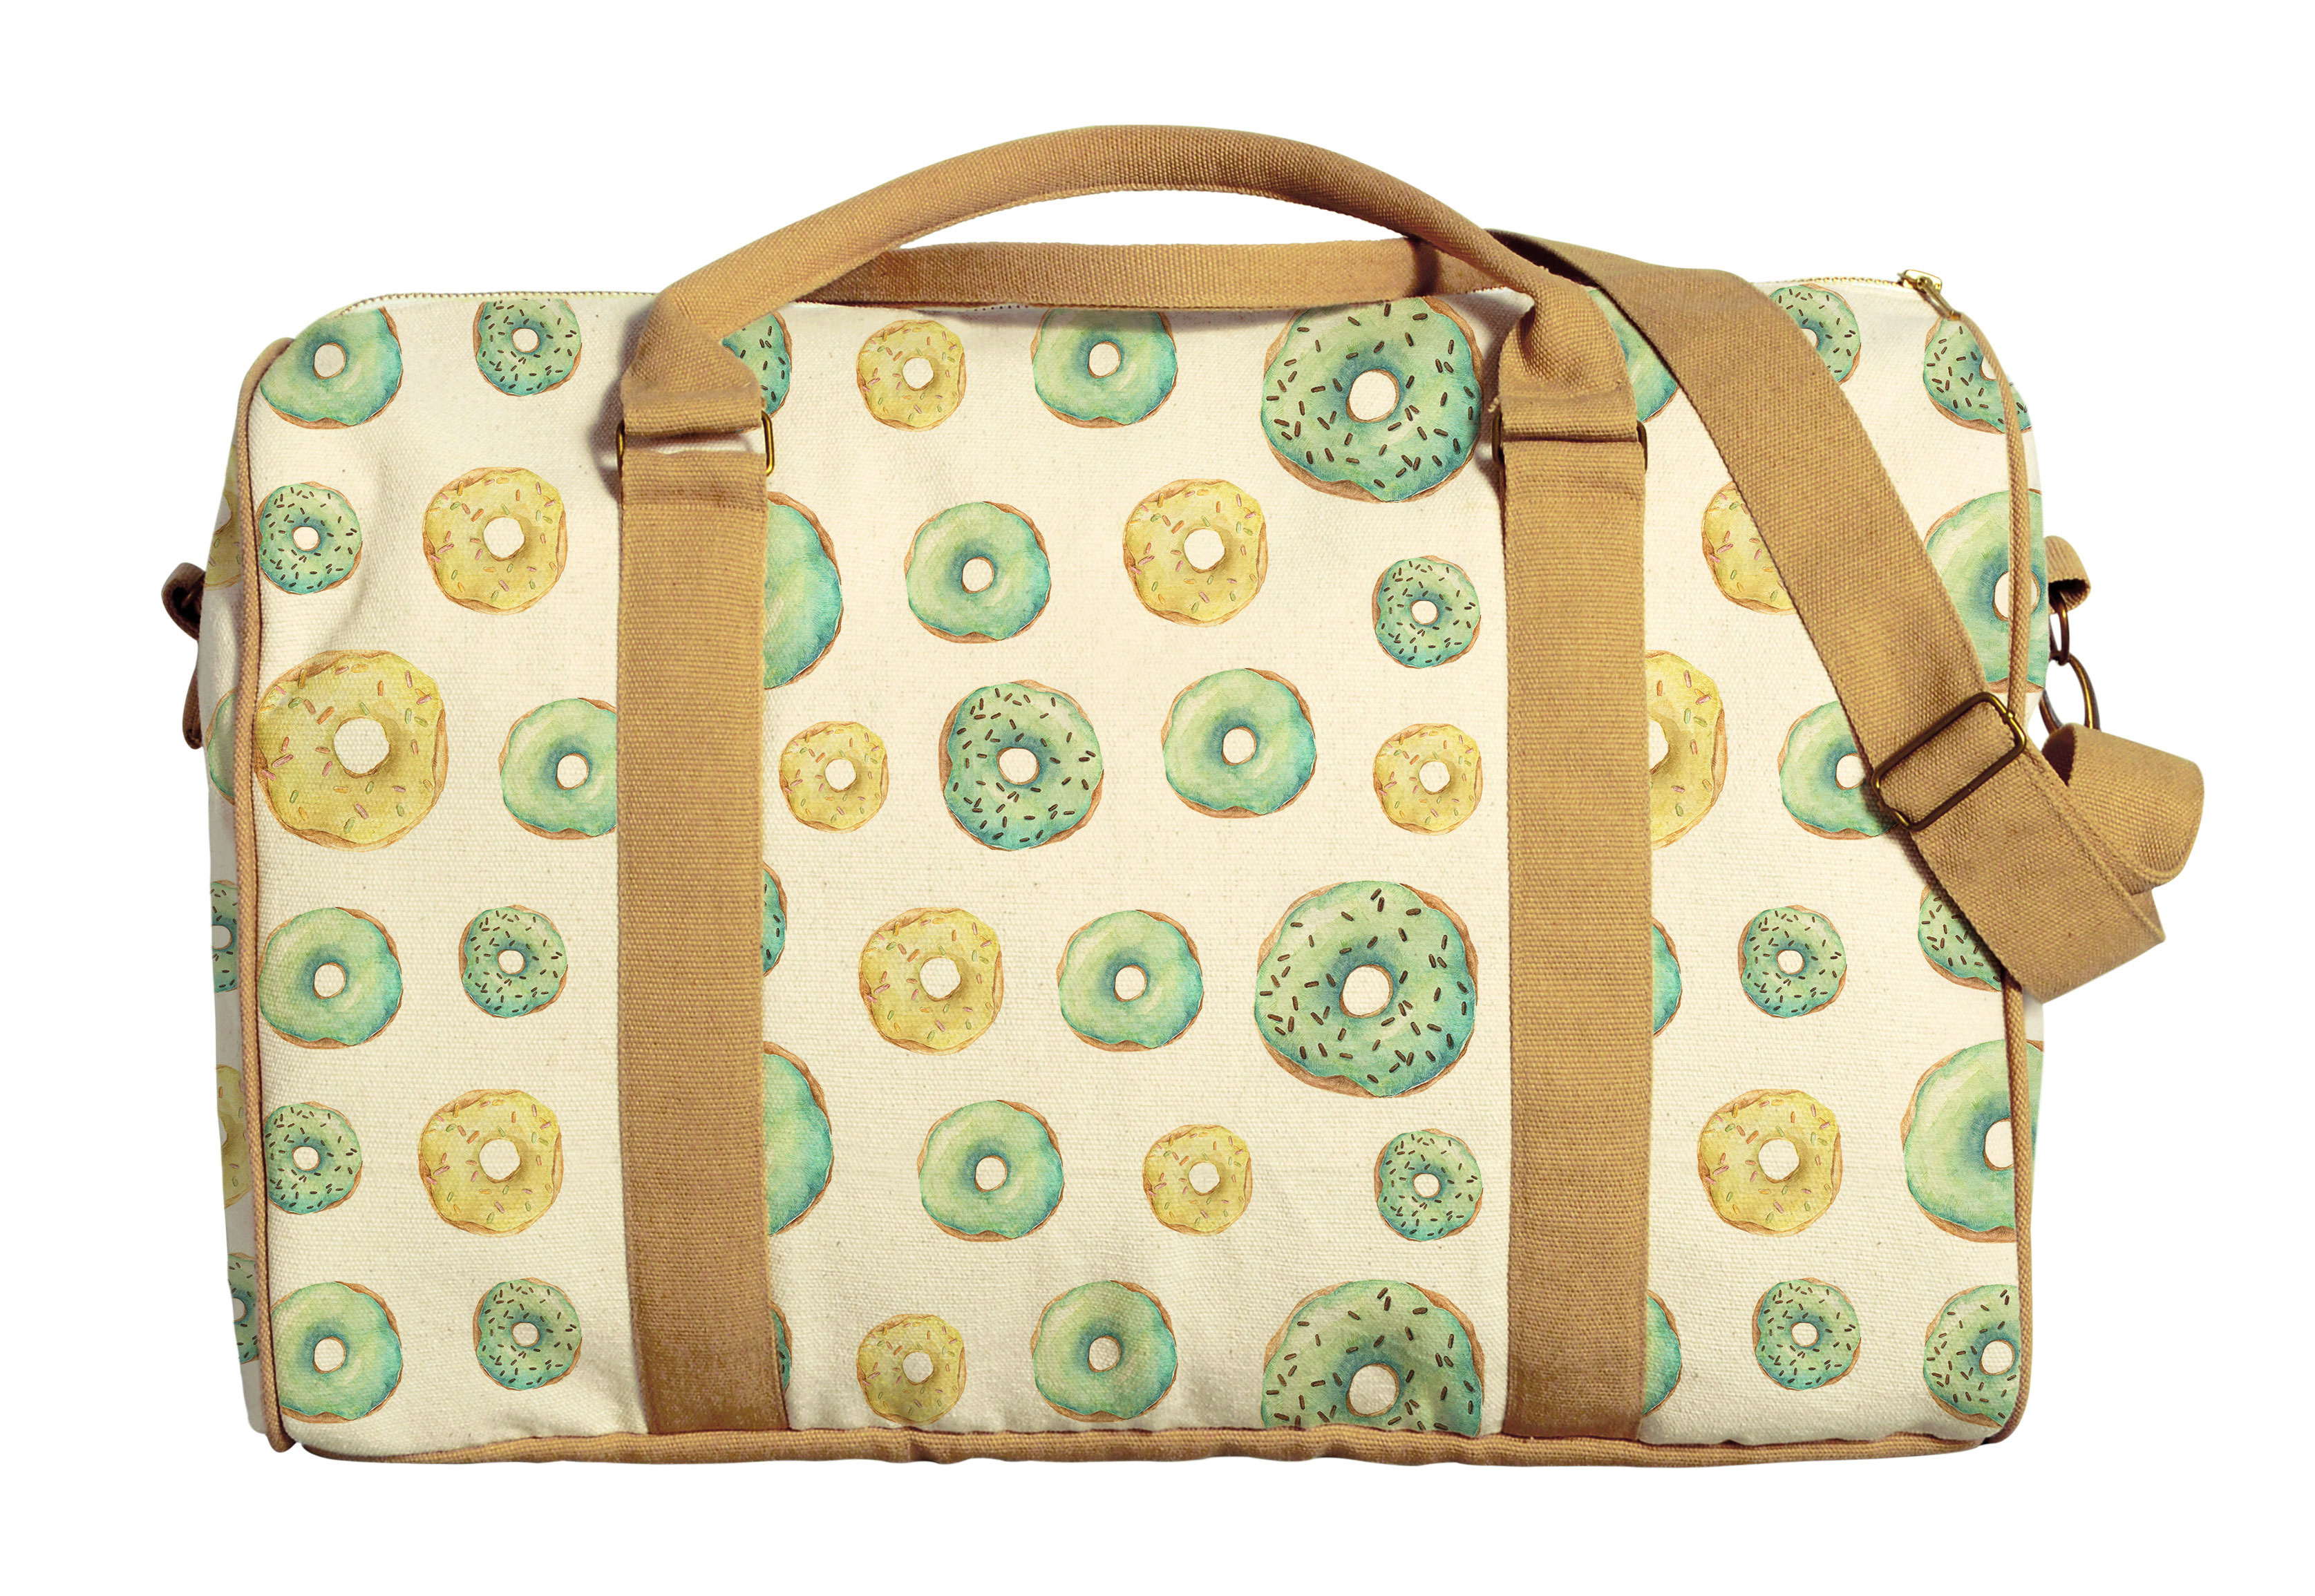 Lemon and Banana Frosted Donuts Printed Canvas Duffle Luggage Travel Bag WAS_42 by Vietsbay